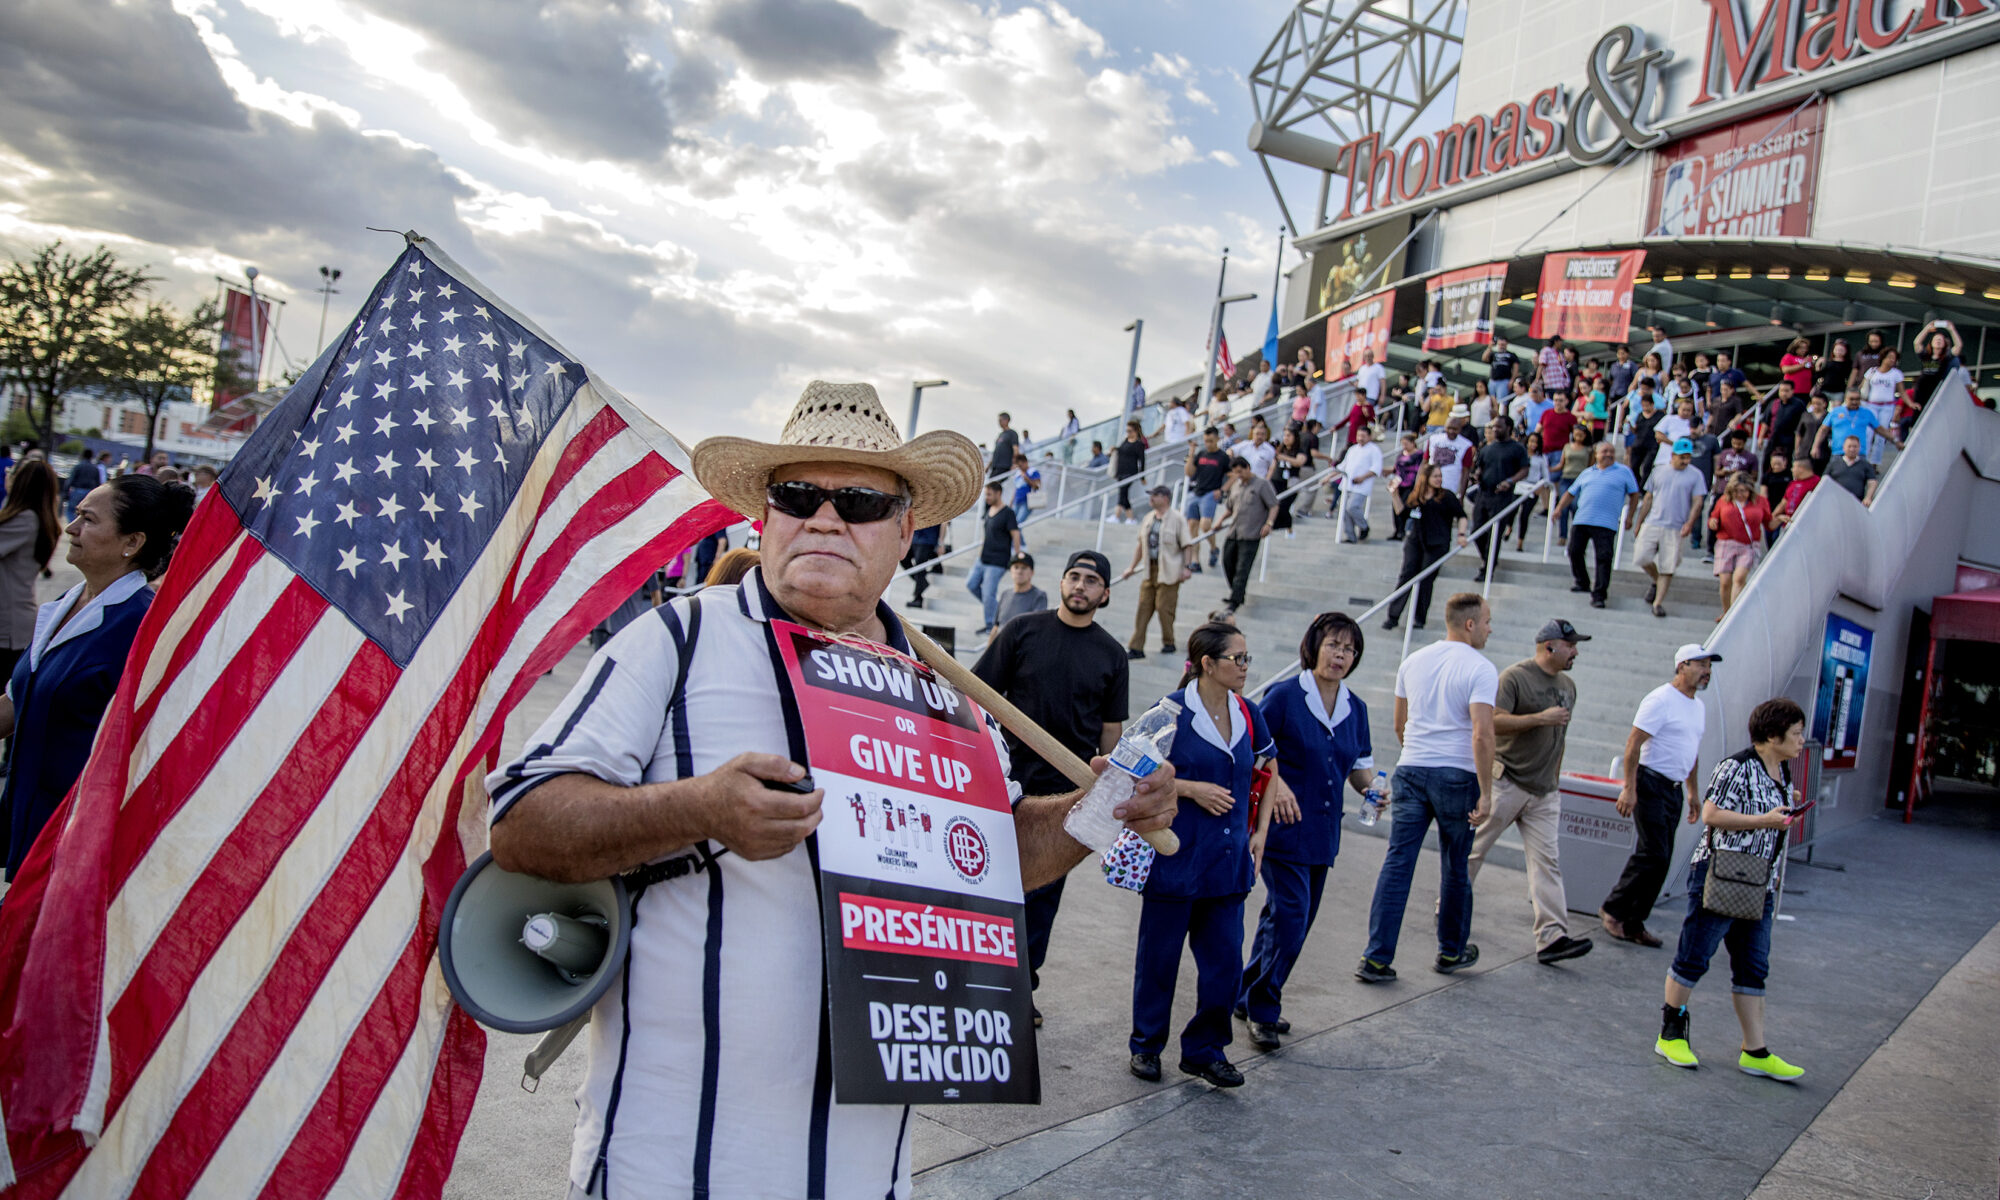 Union member stands holding flag